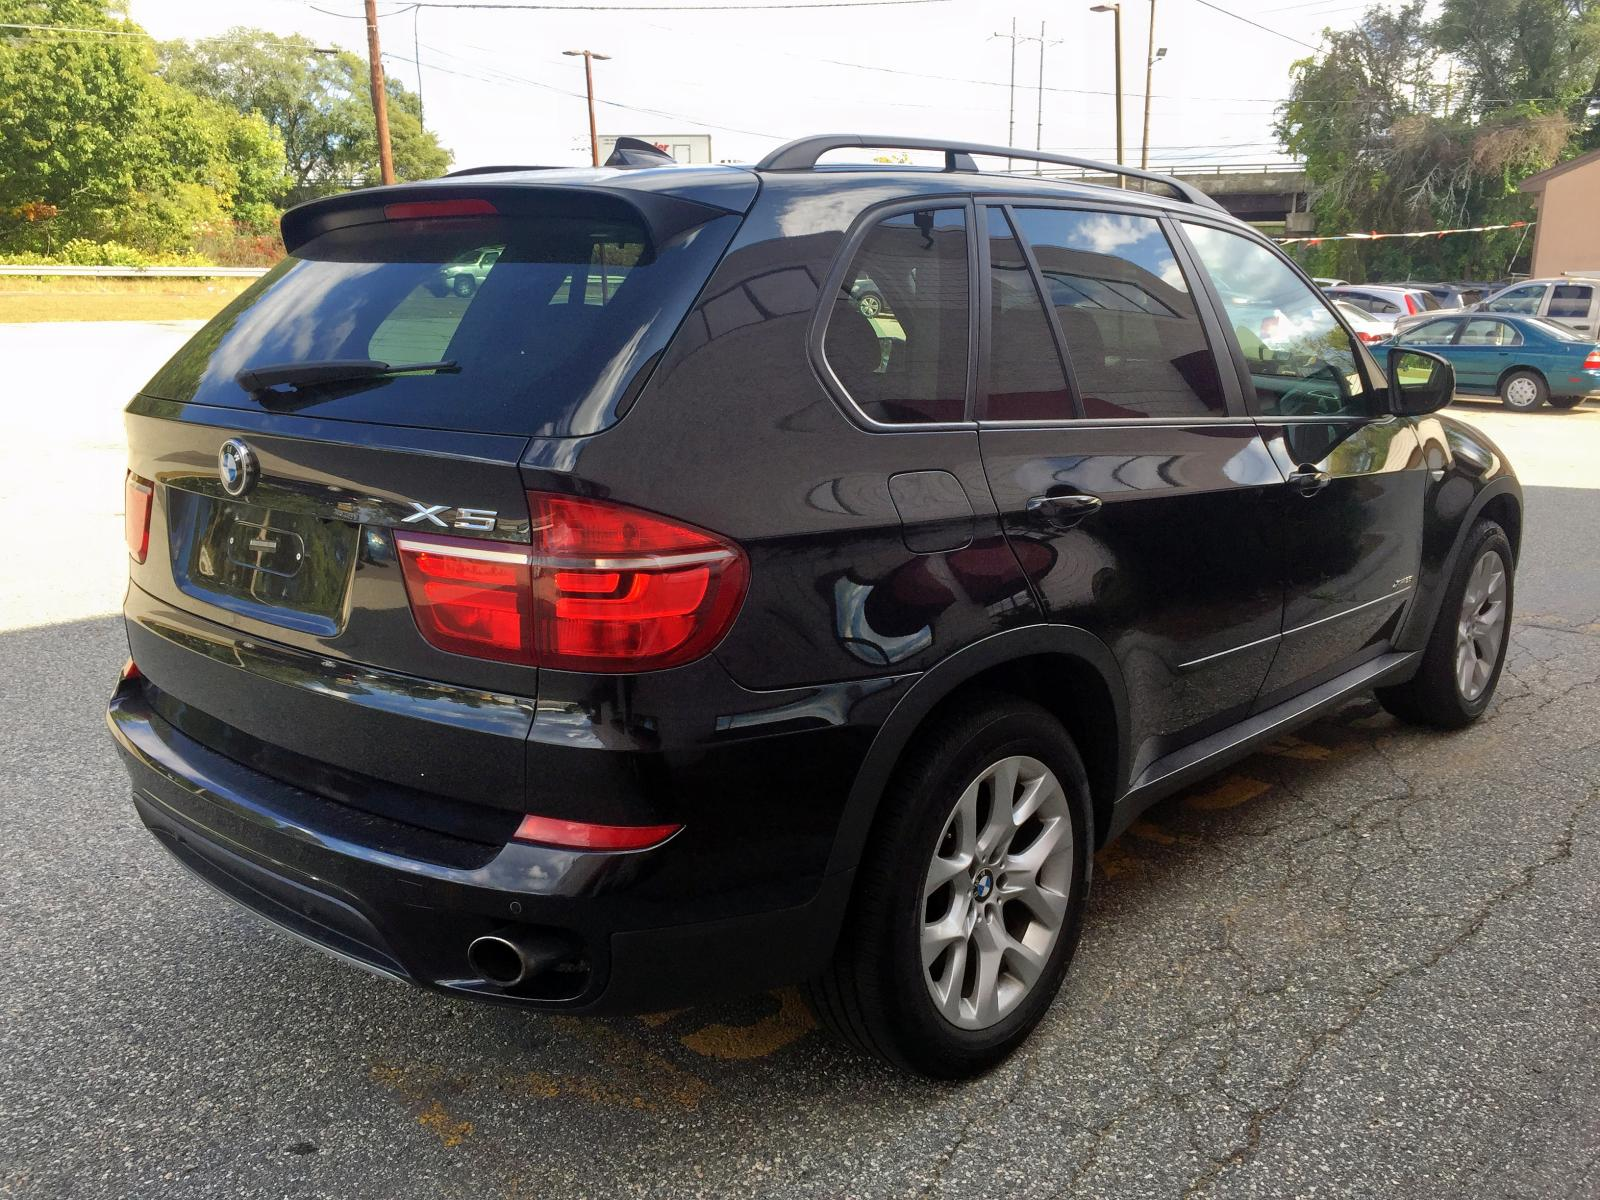 5UXZV4C51BL403394 - 2011 Bmw X5 Xdrive3 3.0L rear view